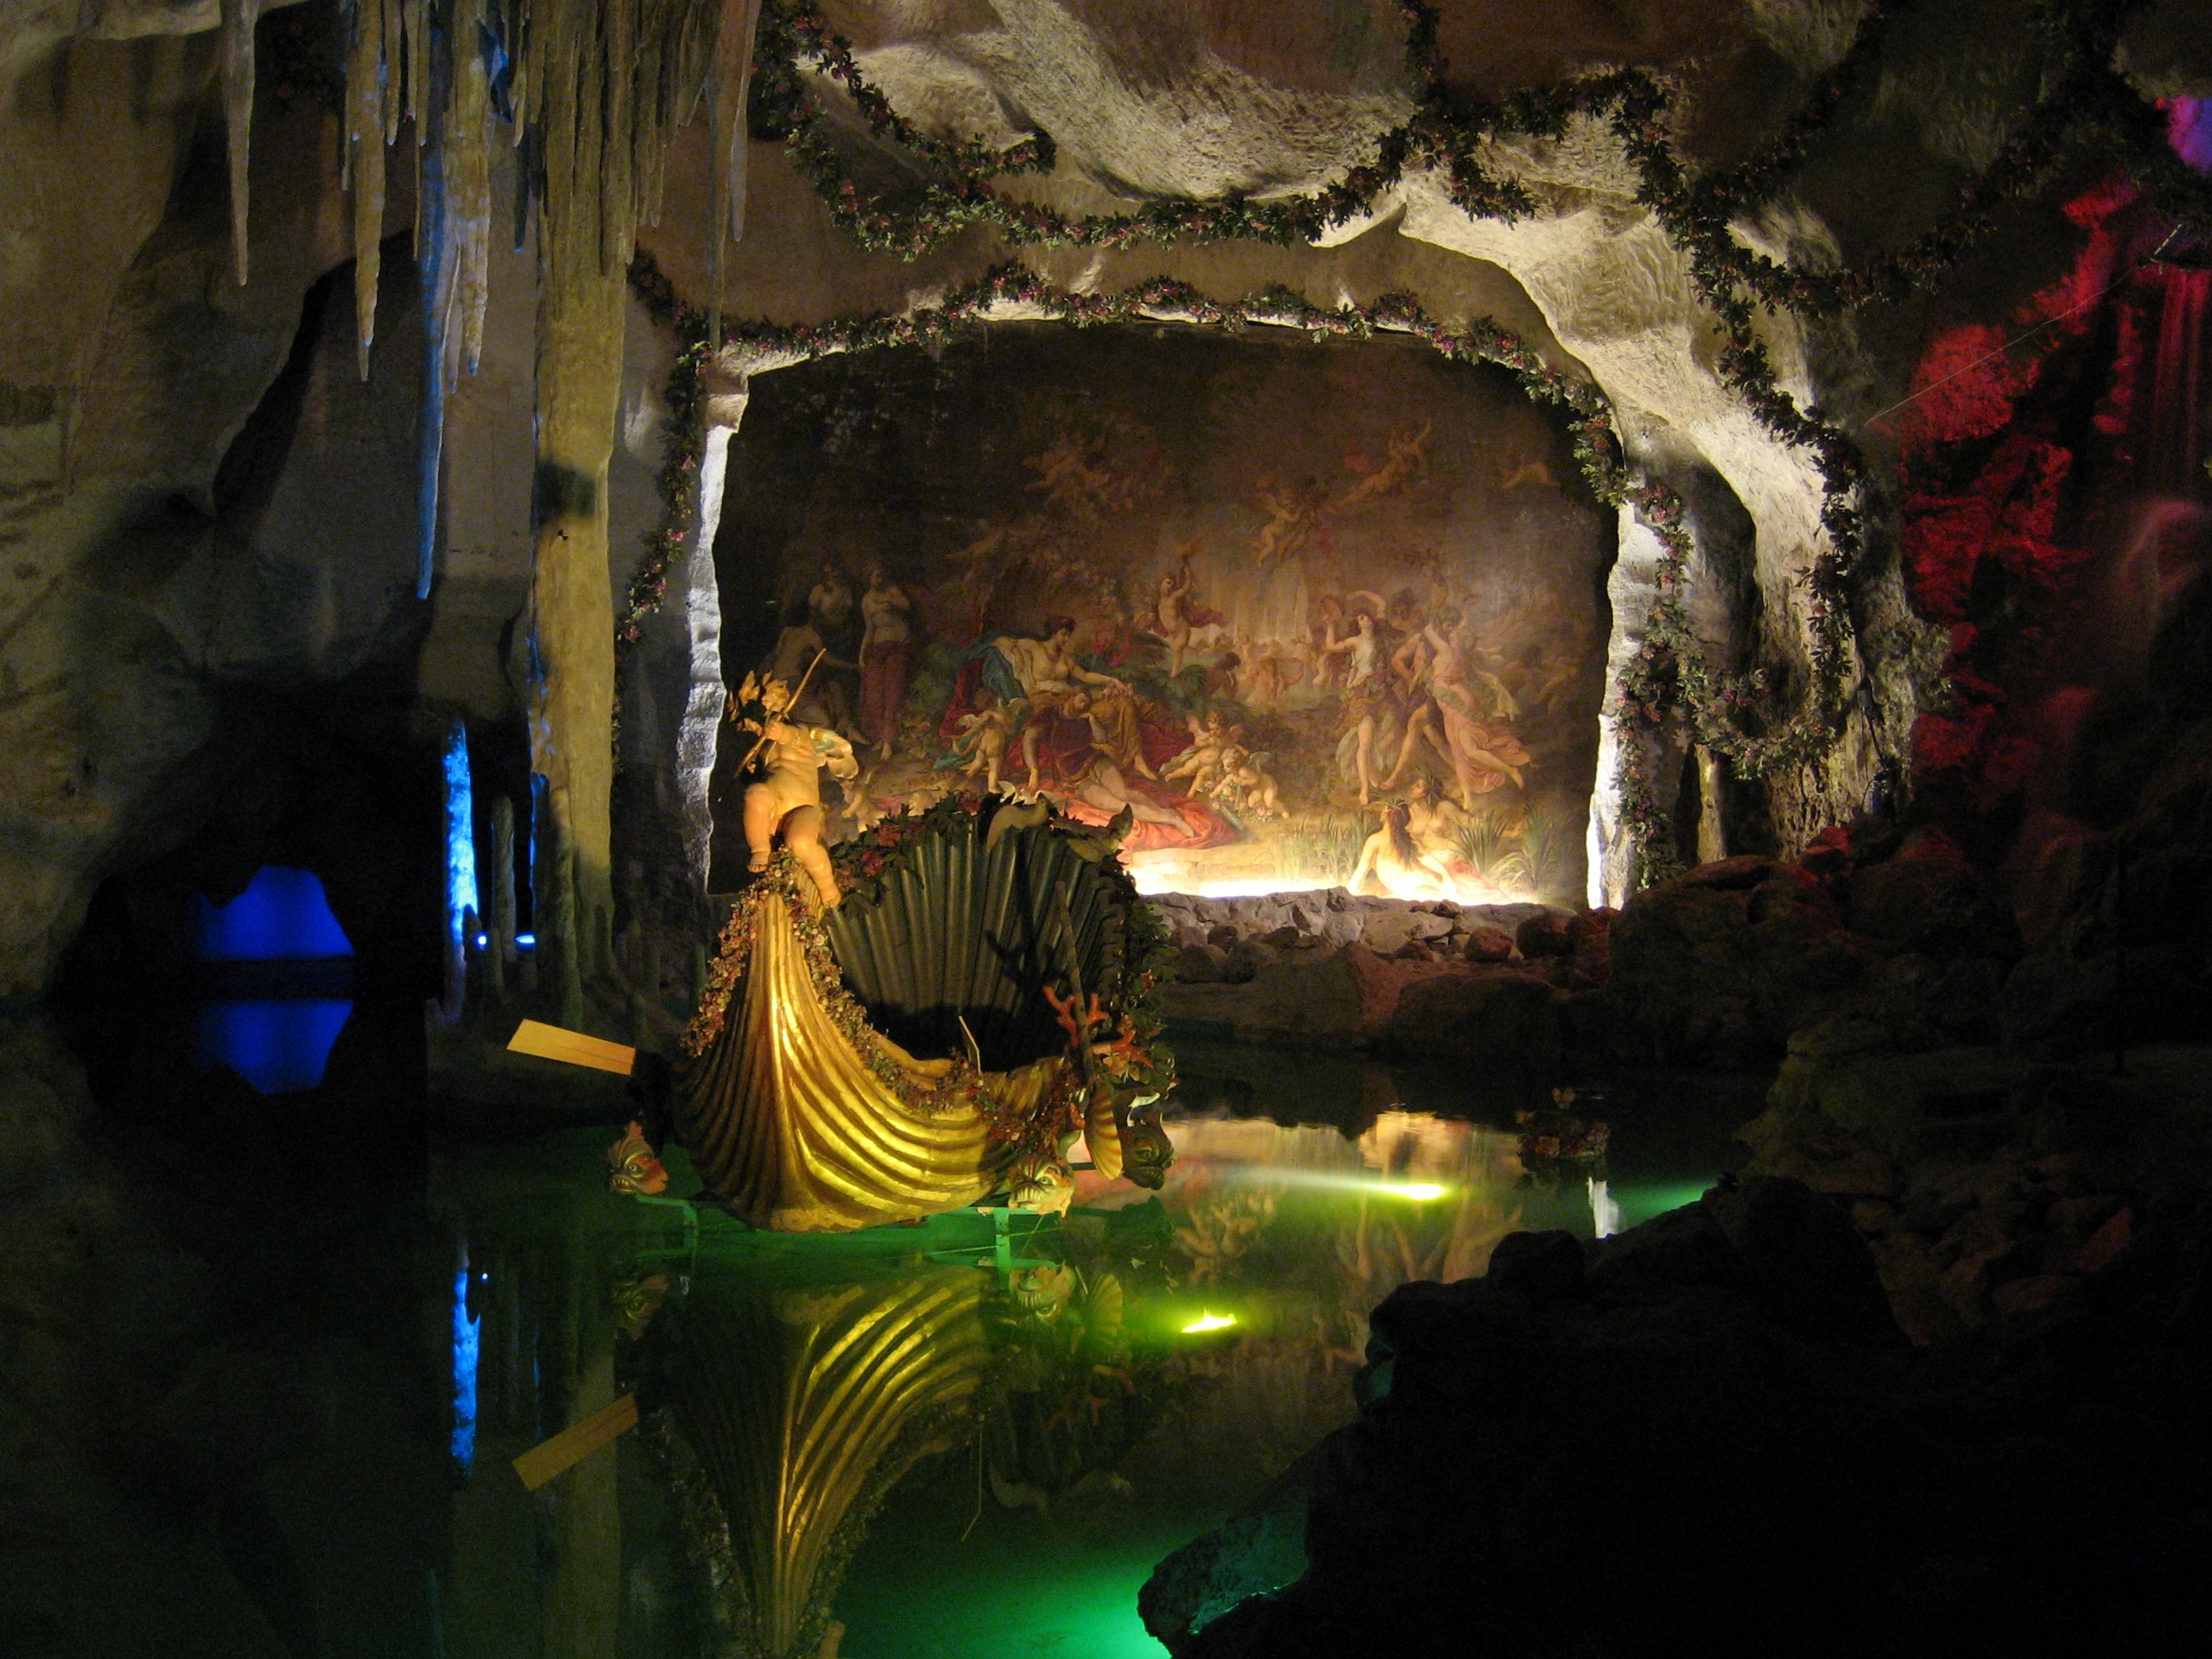 grottoes single guys 2014/10/28 10 top places to go boating in israel jordan river rafting, pedal-boating in the park, cruising the sea of galilee, kayaking in the red sea  the limestone grottoes of rosh hanikra on the mediterranean sea near the lebanon border are one of.